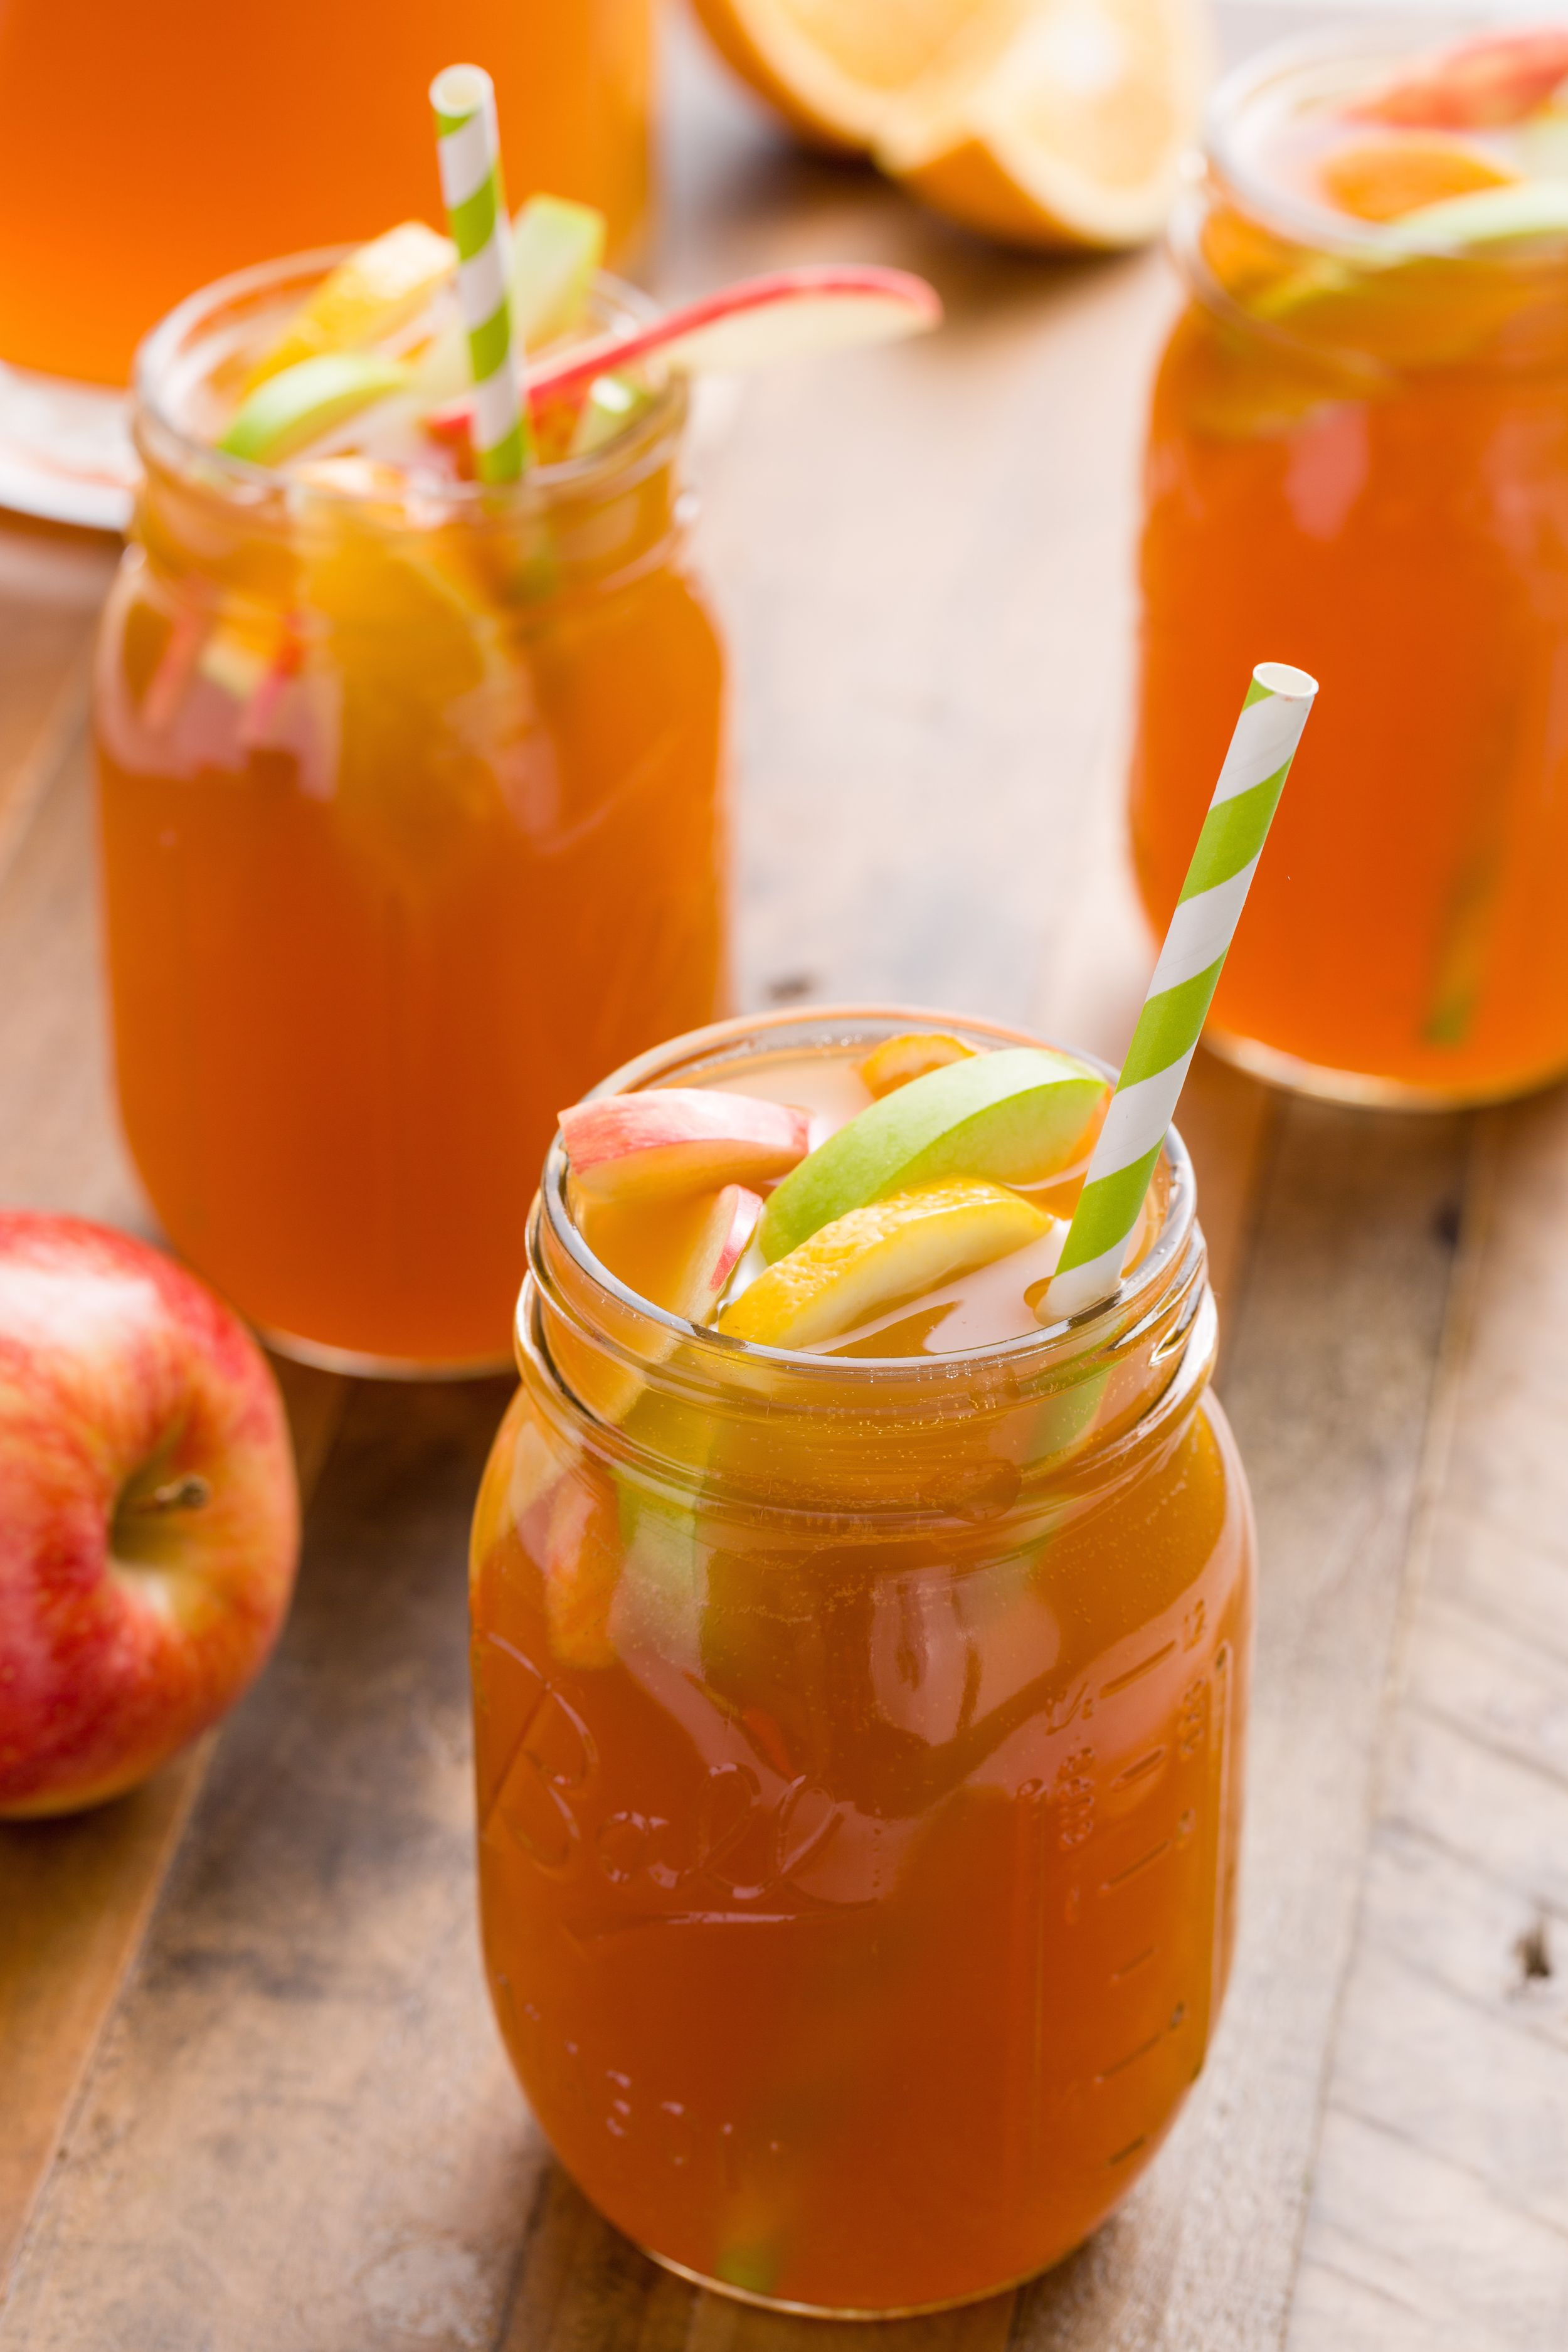 11 Things You Need To Know Before Drinking Apple Cider